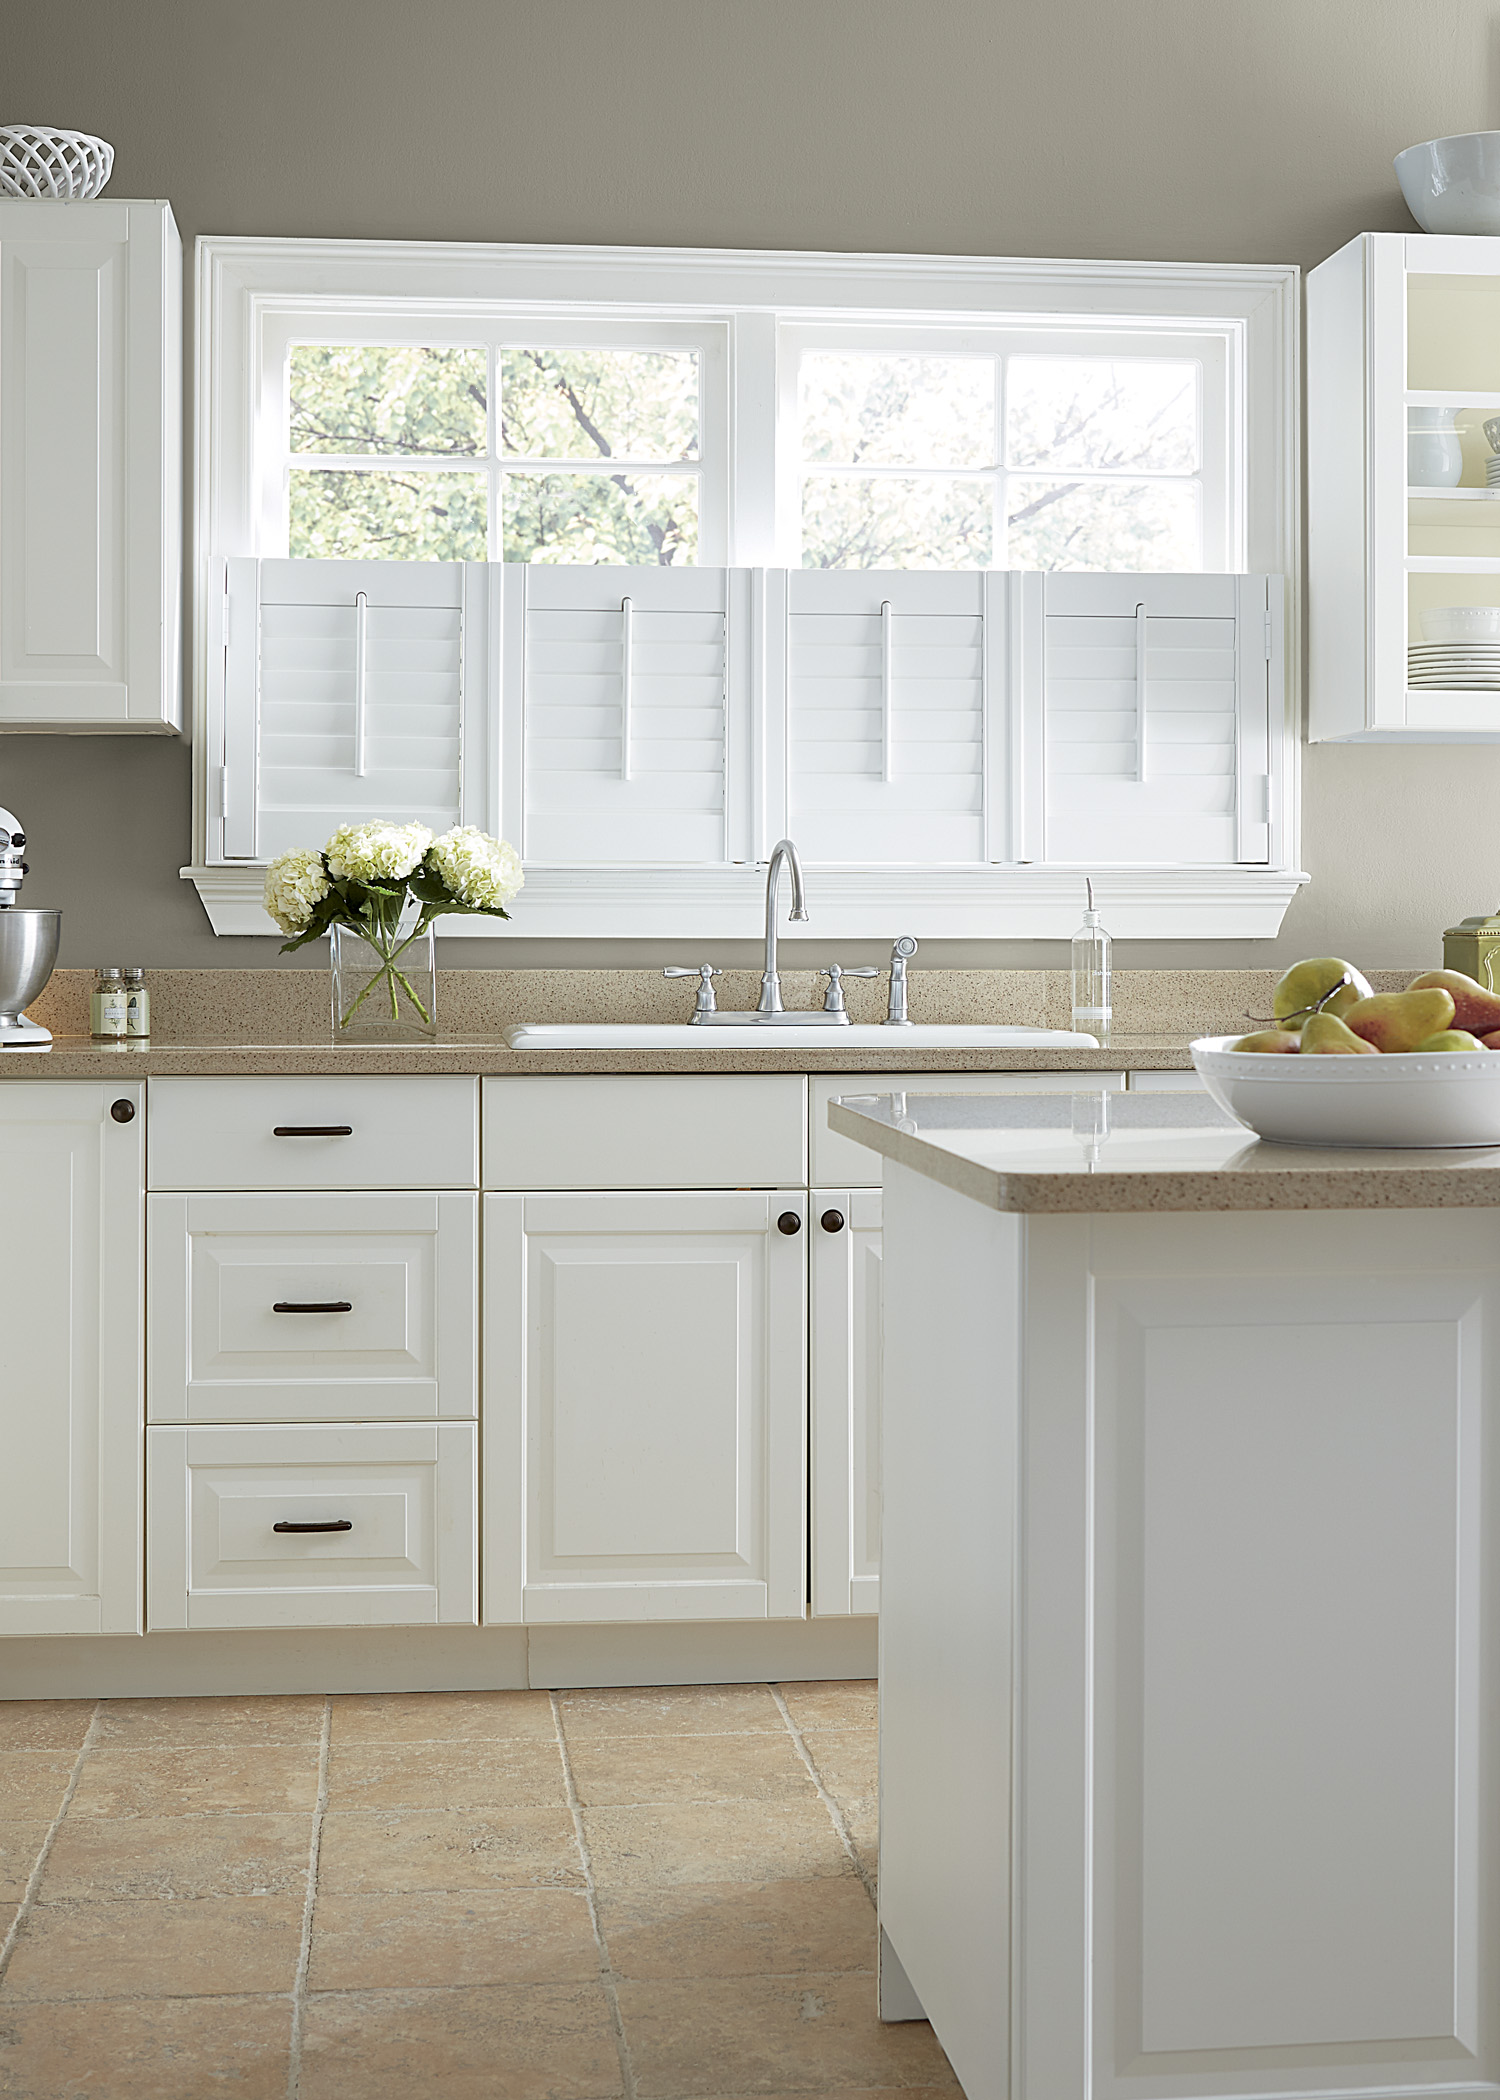 Composite Shutters in Kitchen